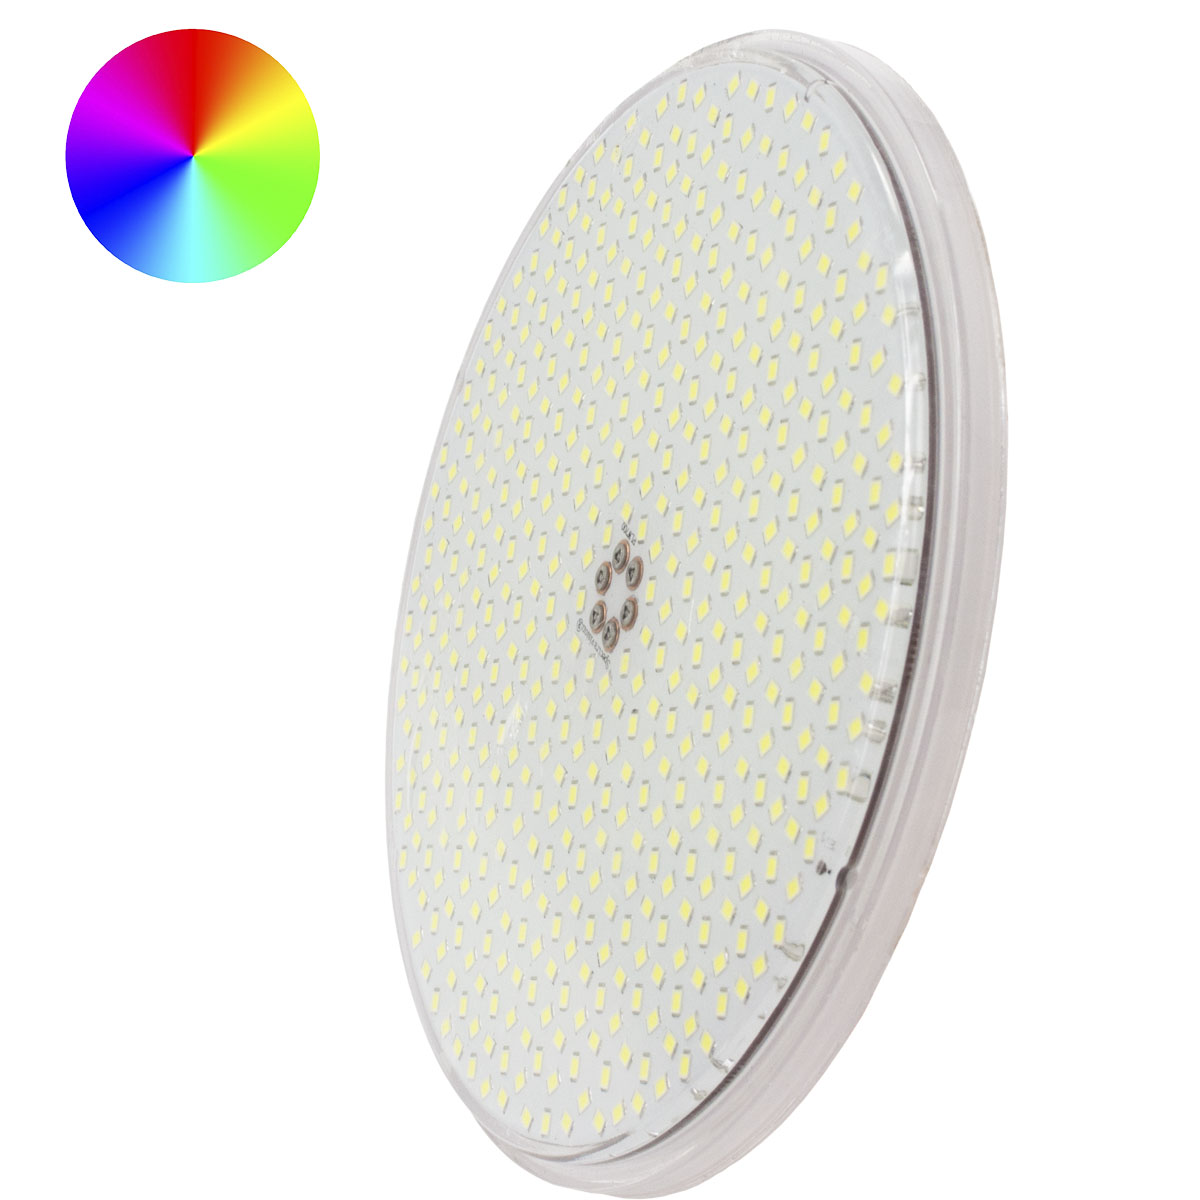 Moonlight ultra platte vorm zwembadlamp 15W RGB